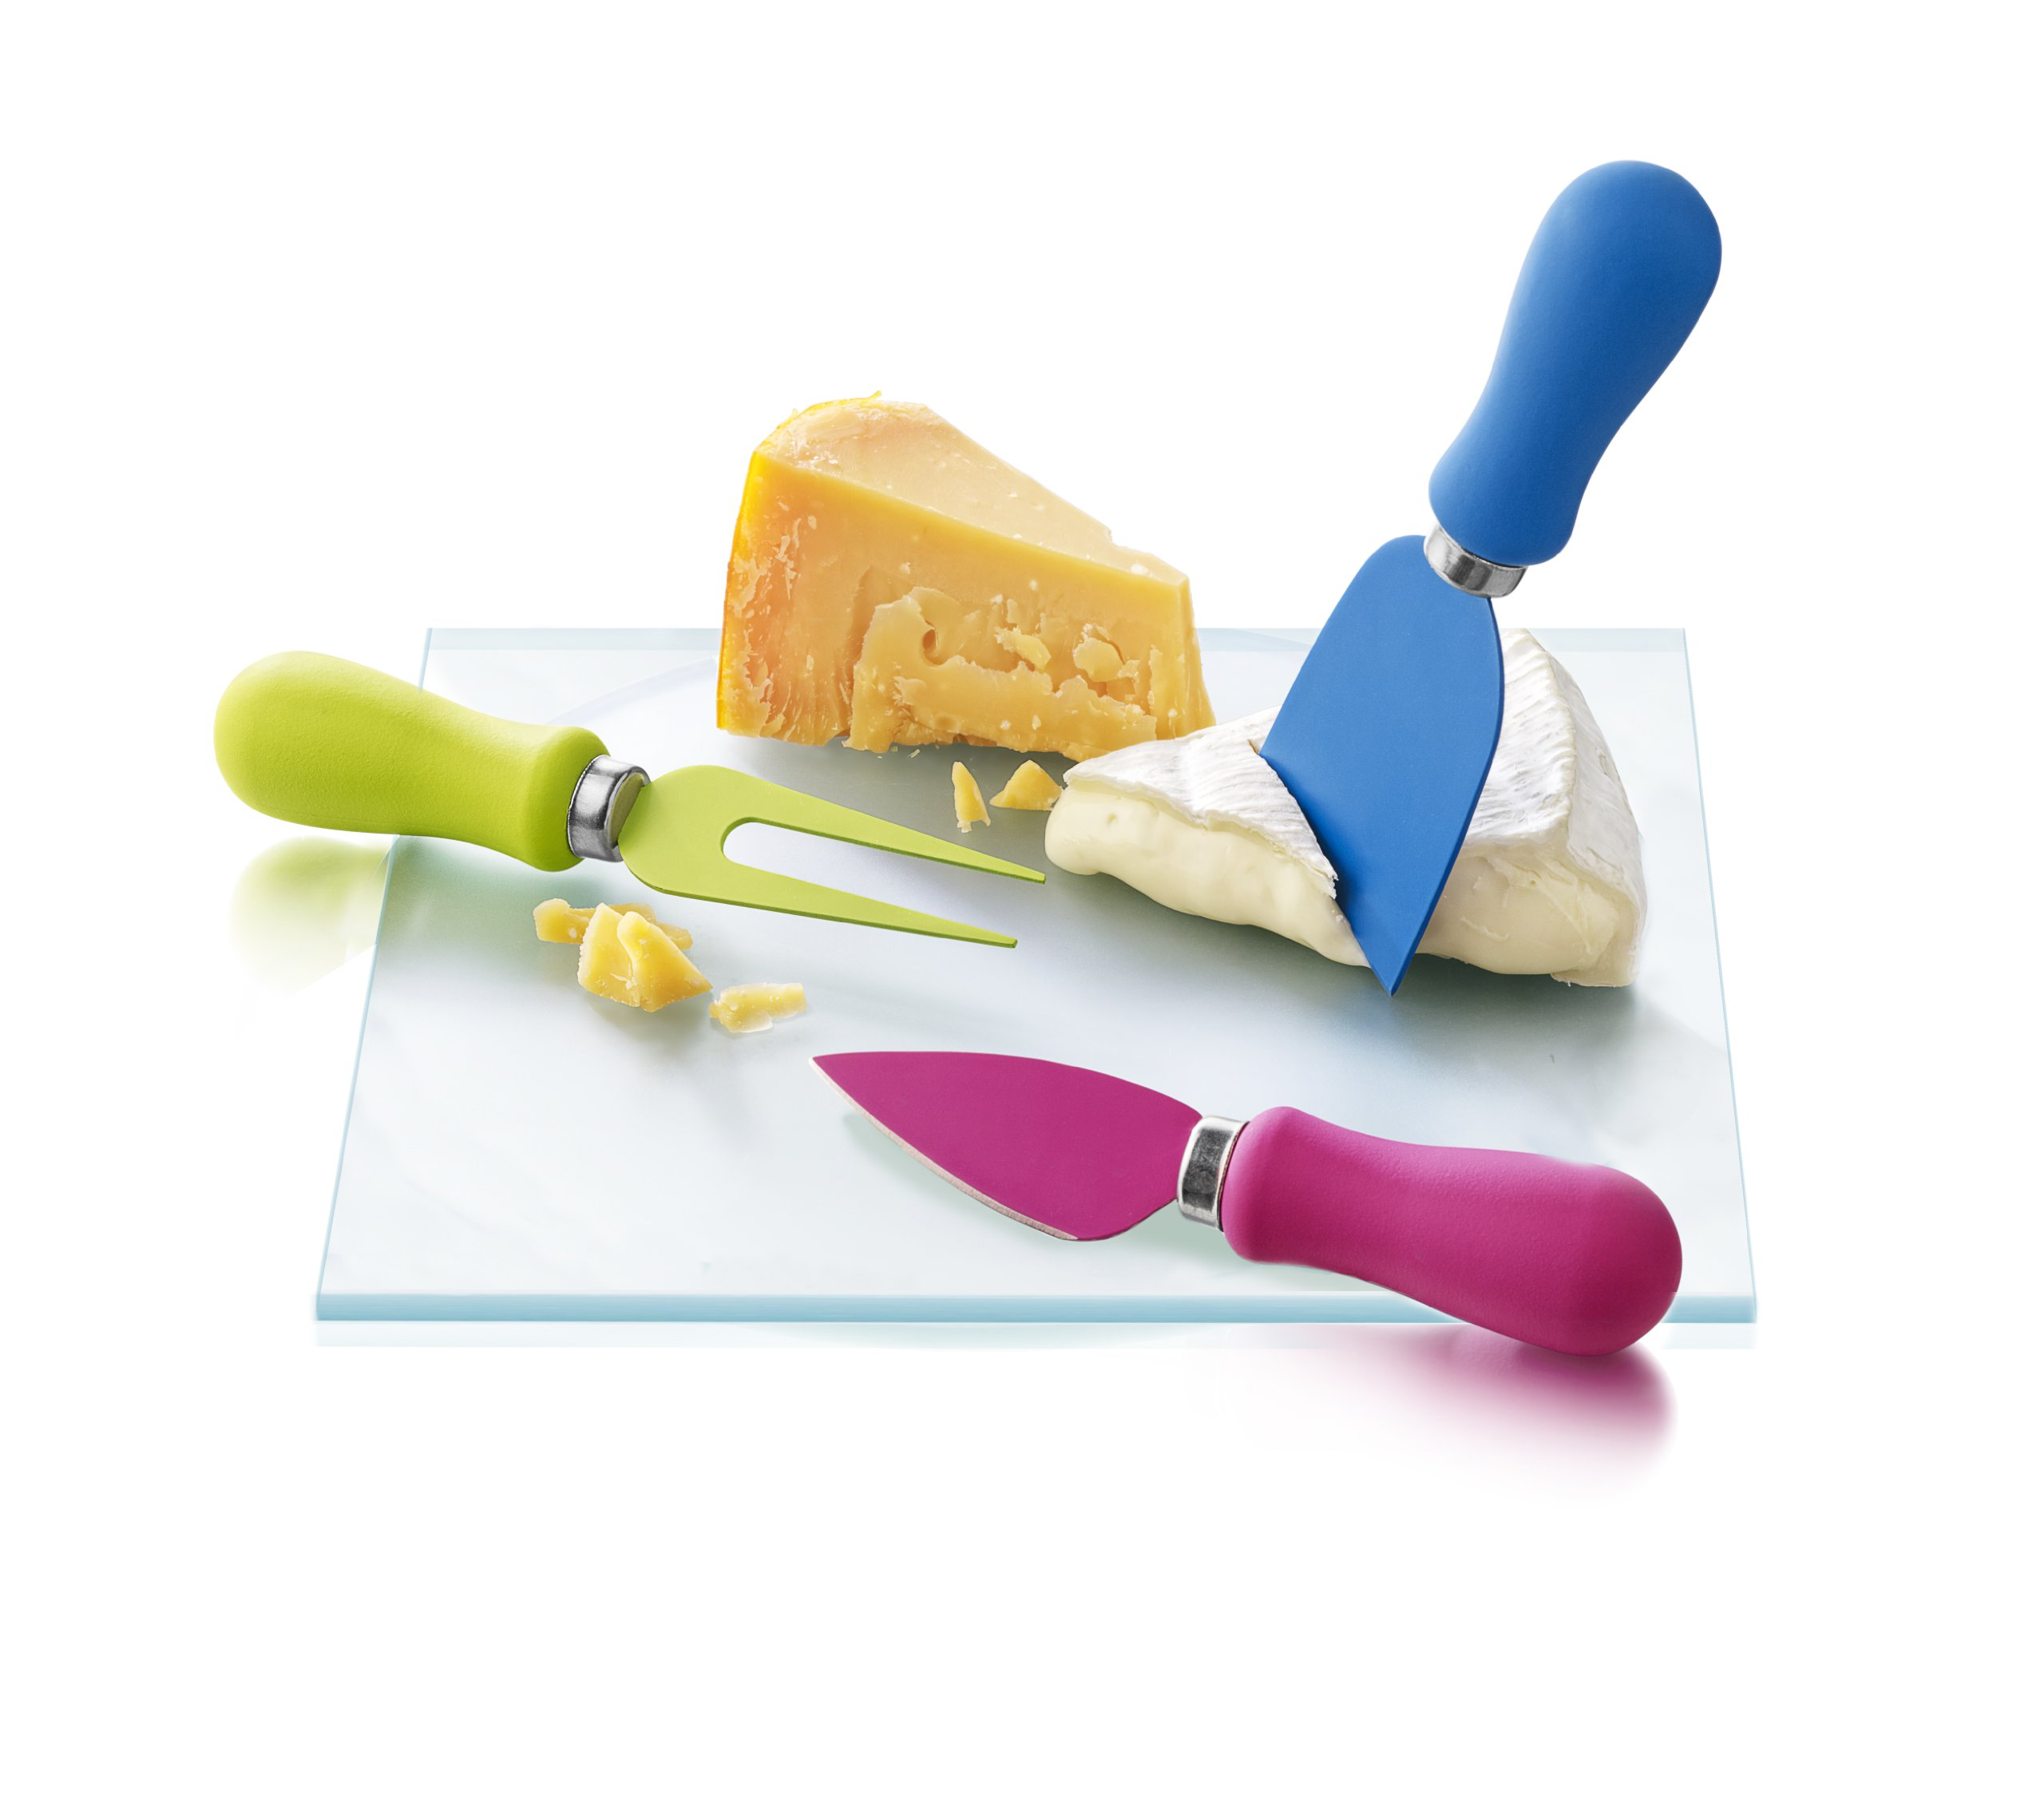 Boska Holland Havana Collection Cheese Knife Set for All Types of Cheese, Assorted Bright Colors